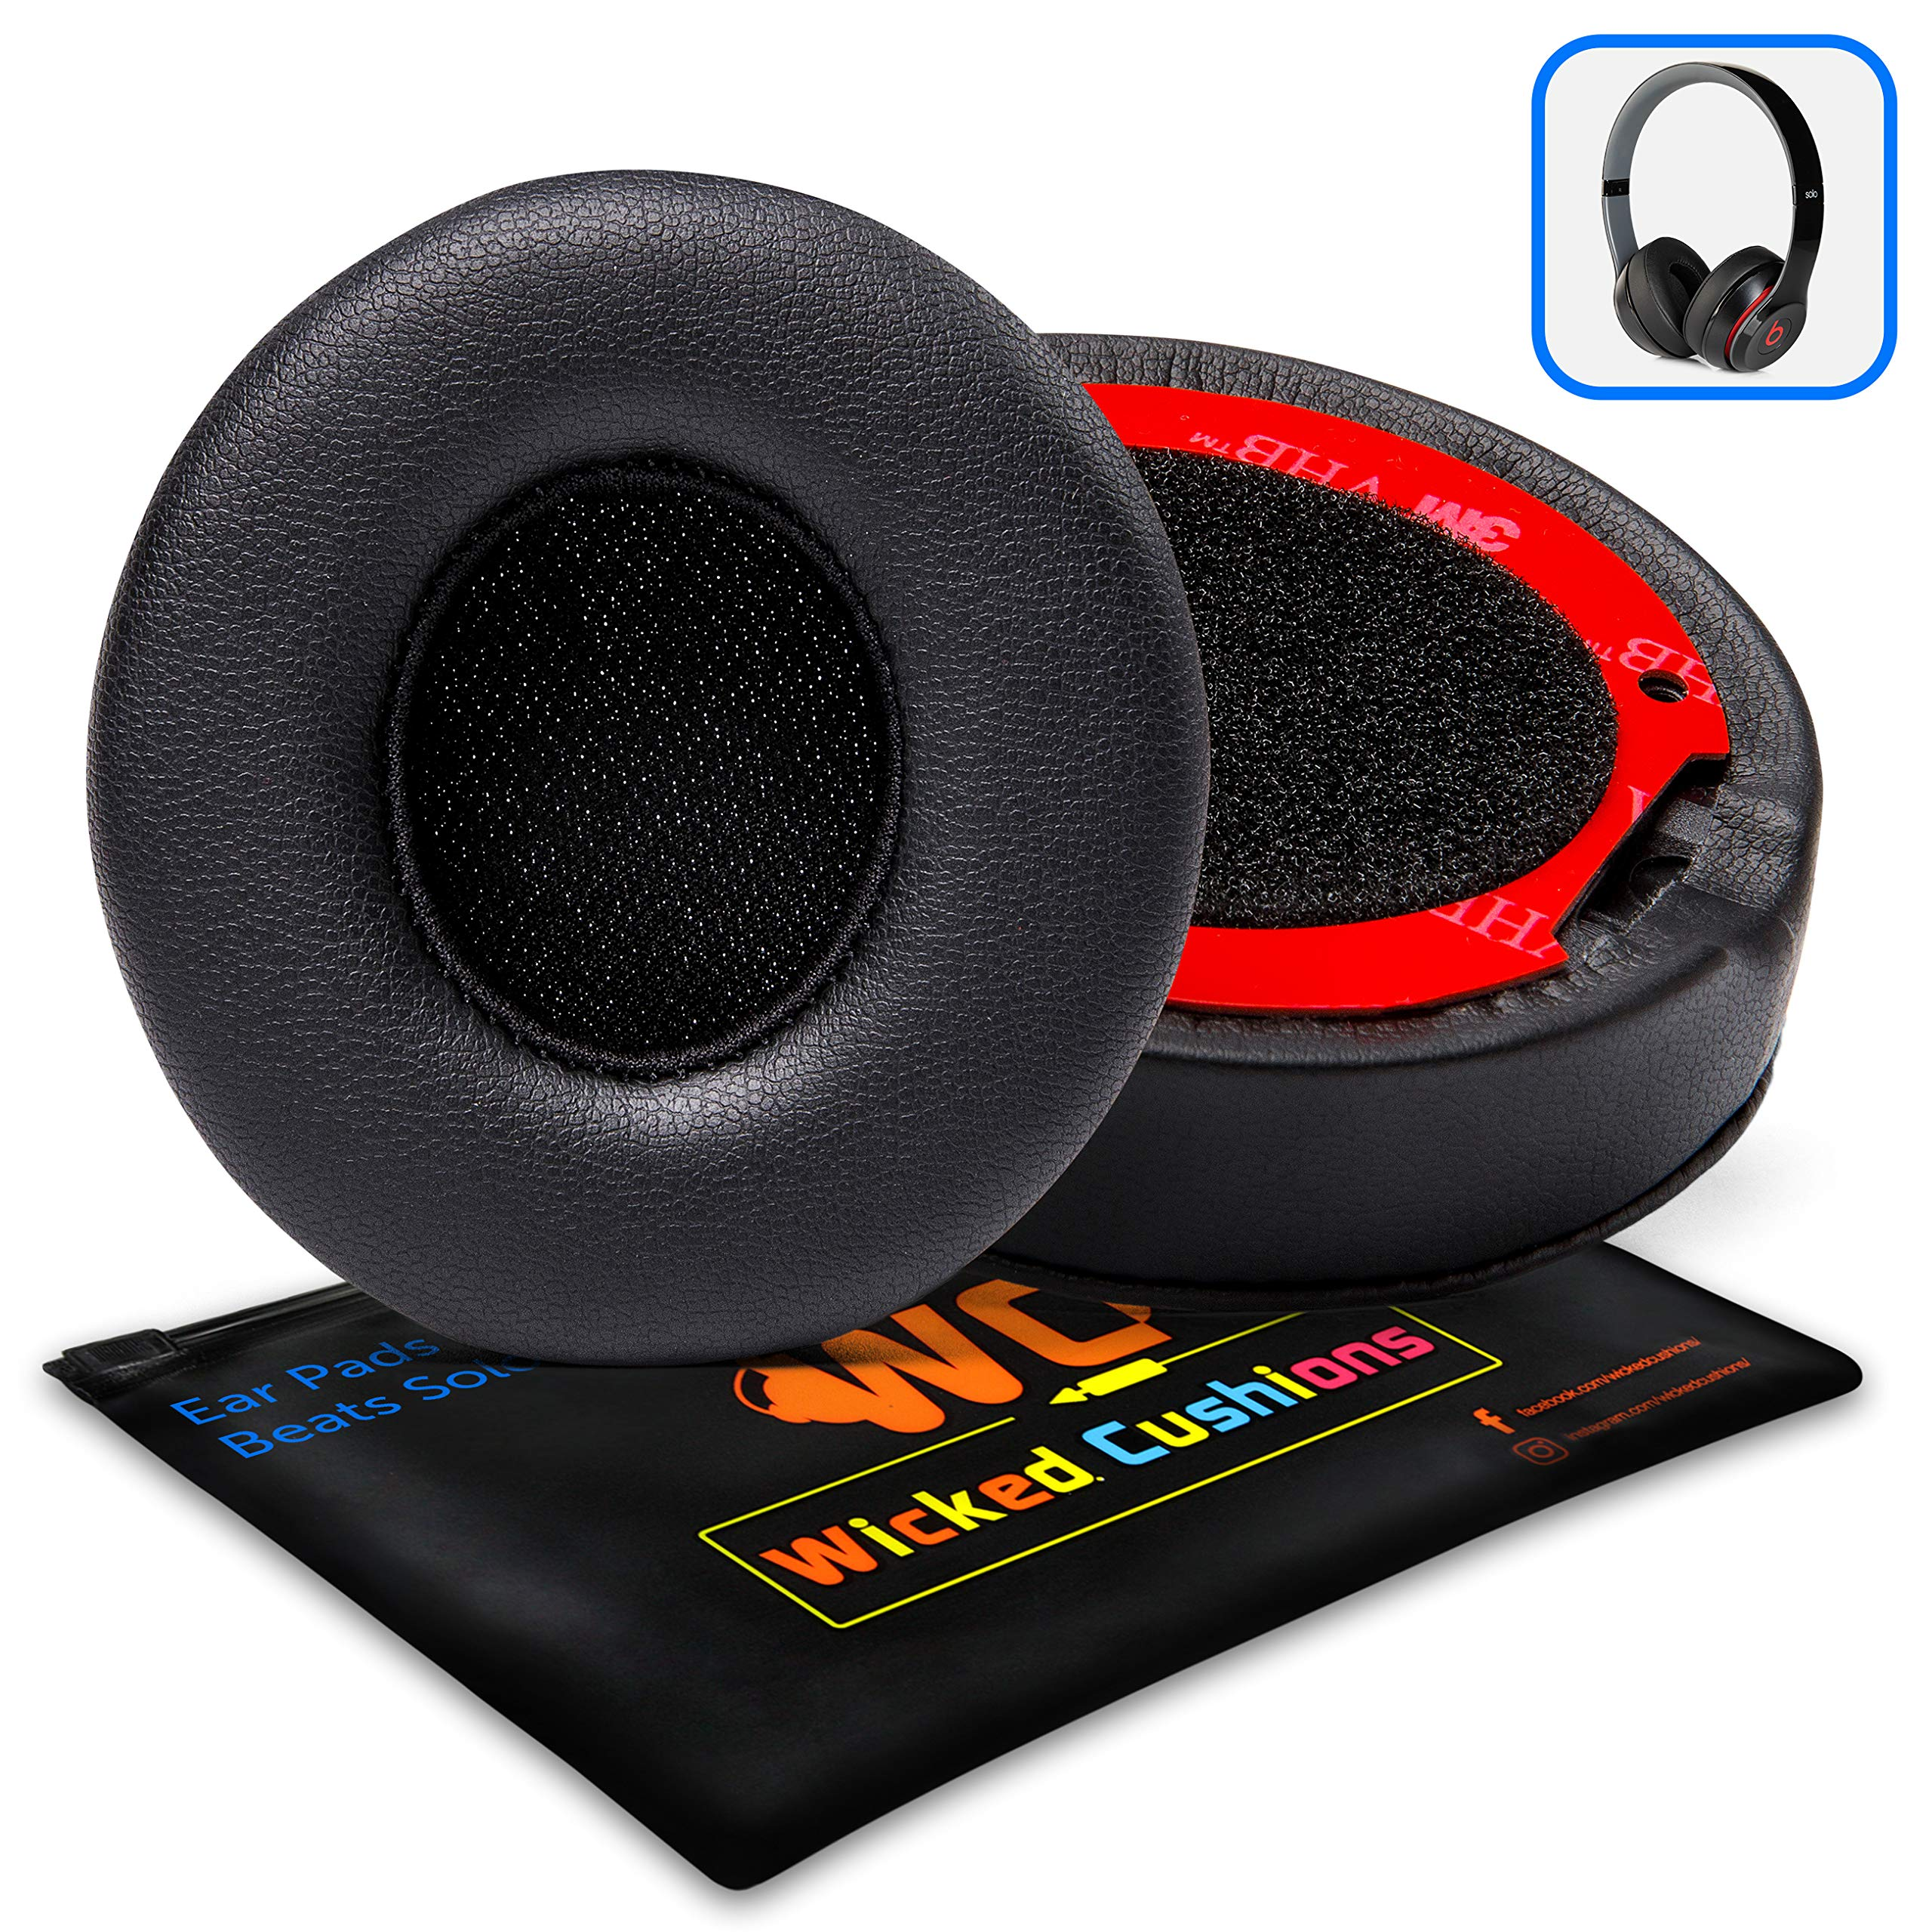 Wicked Cushions Beats Earpad Replacement